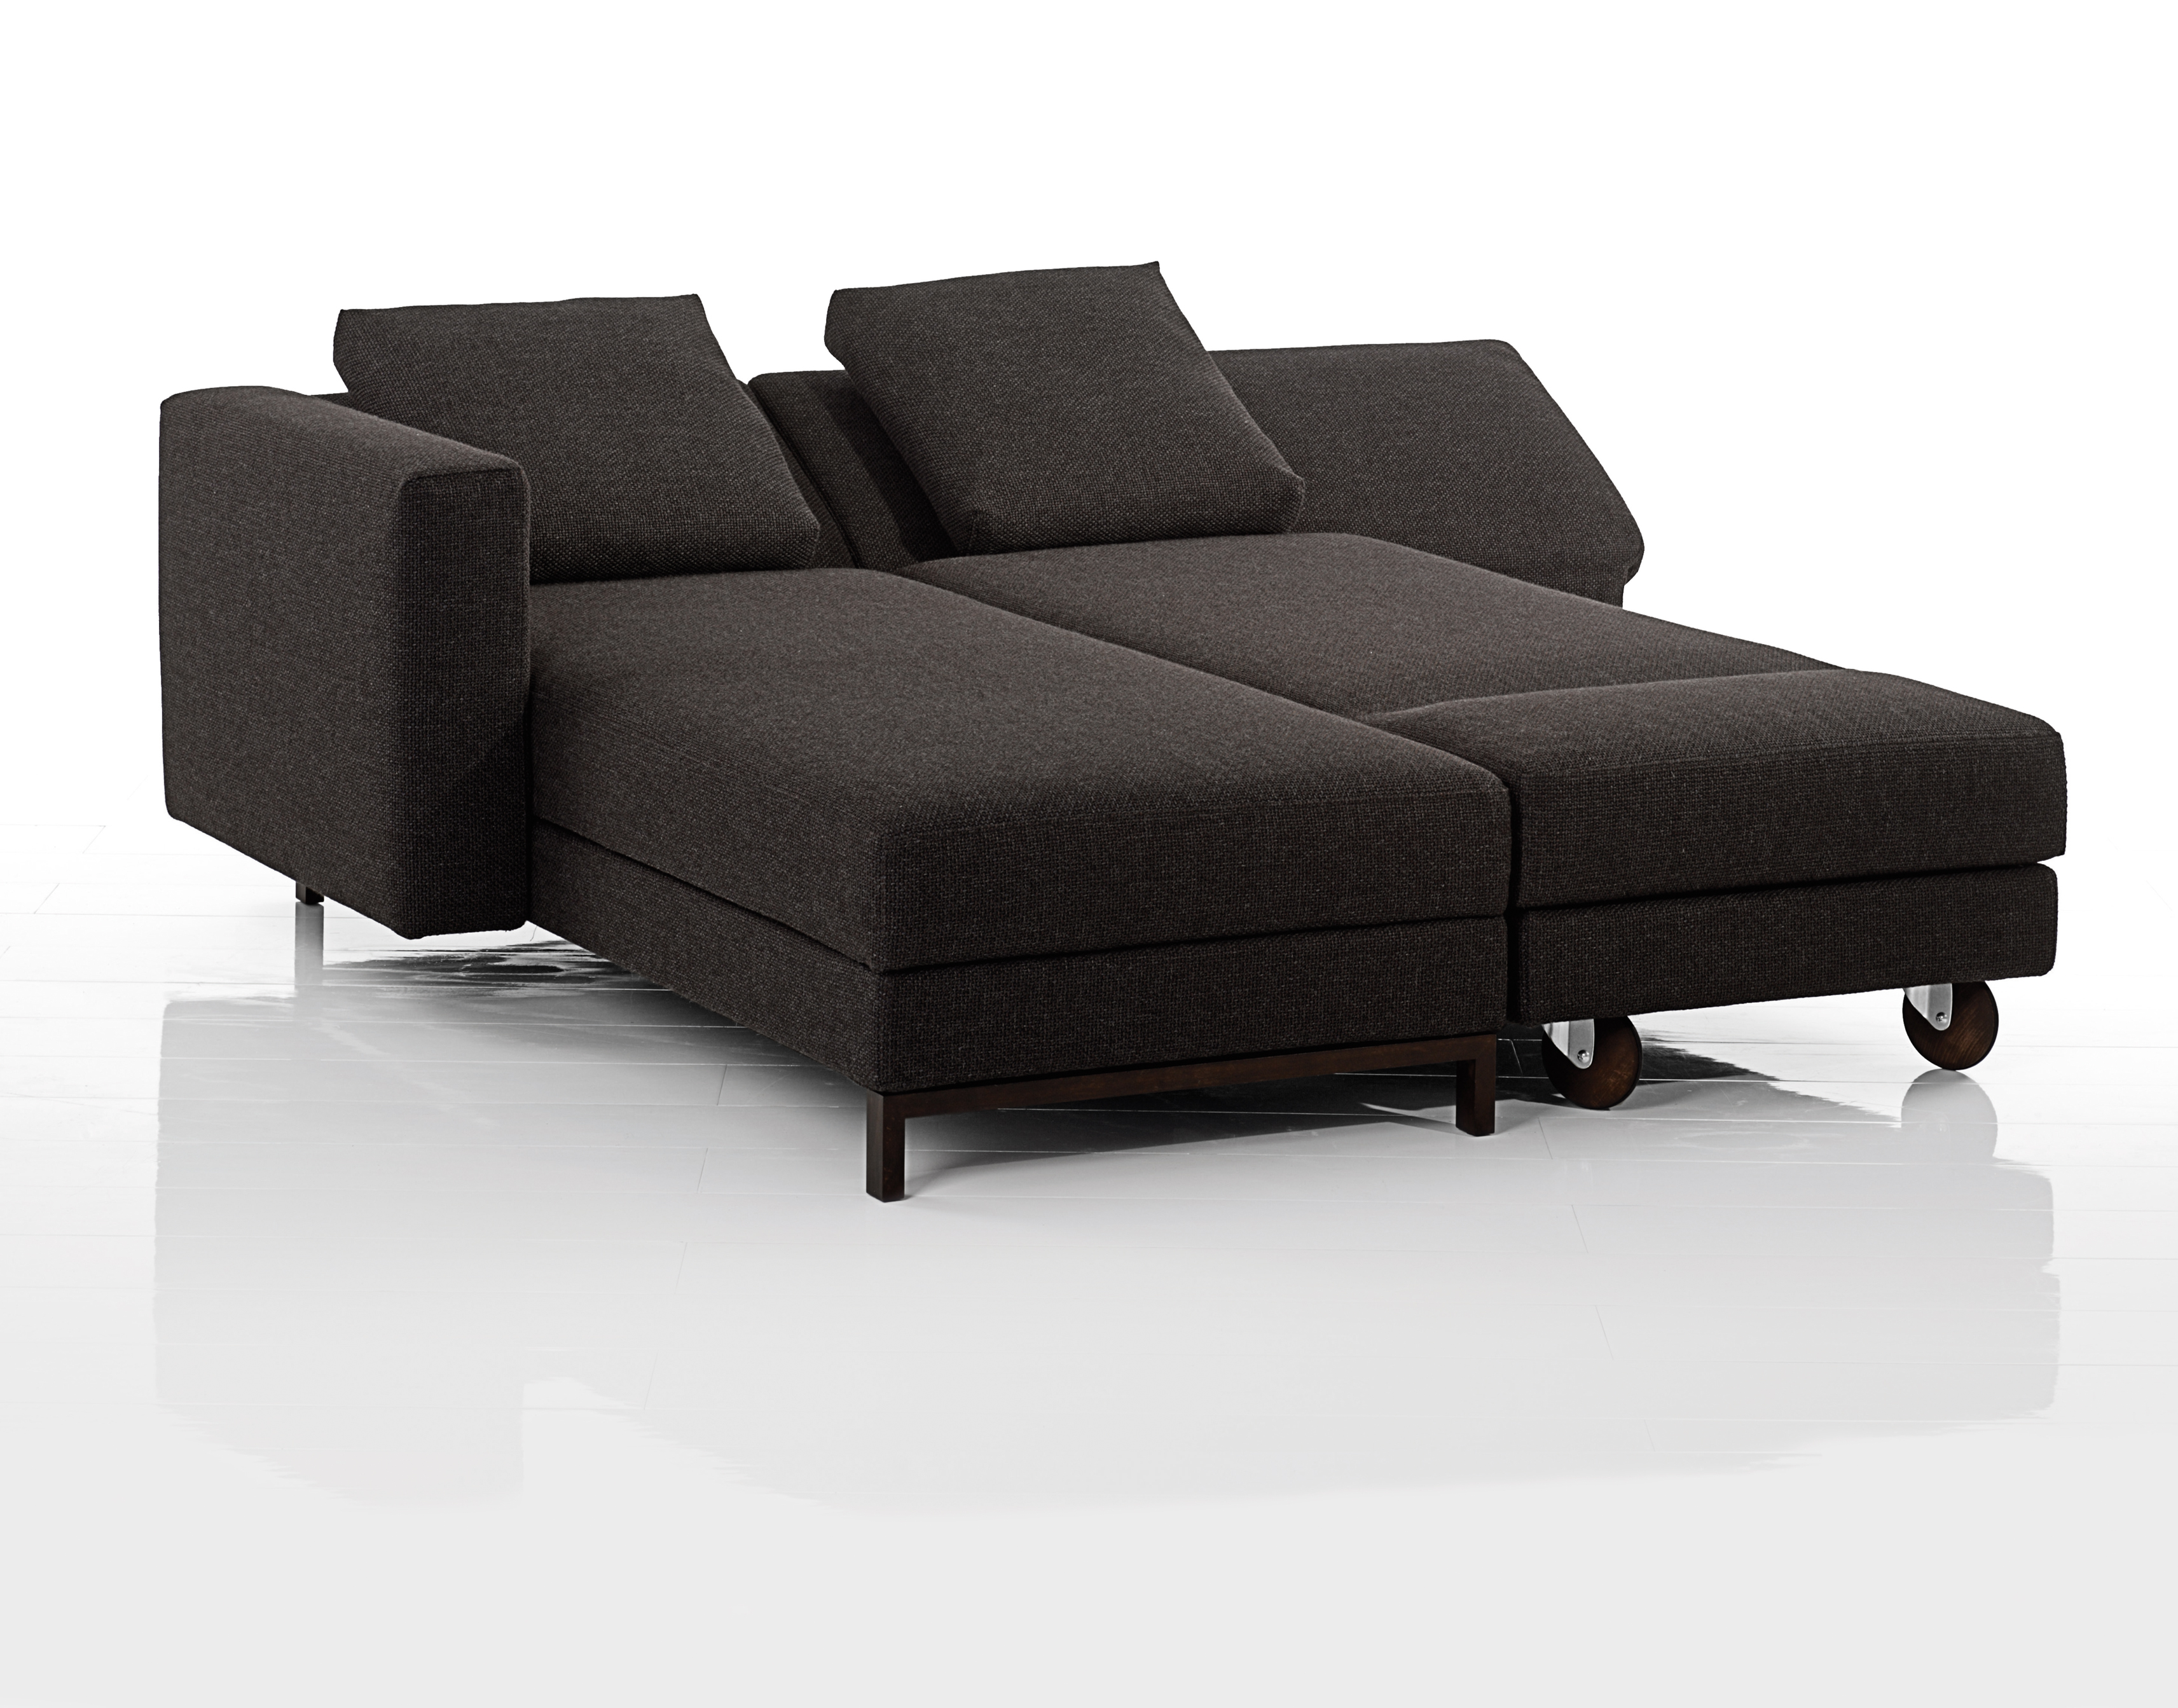 sofa four two in bestsellerstoff 20 sofa four two von br hl sippold. Black Bedroom Furniture Sets. Home Design Ideas